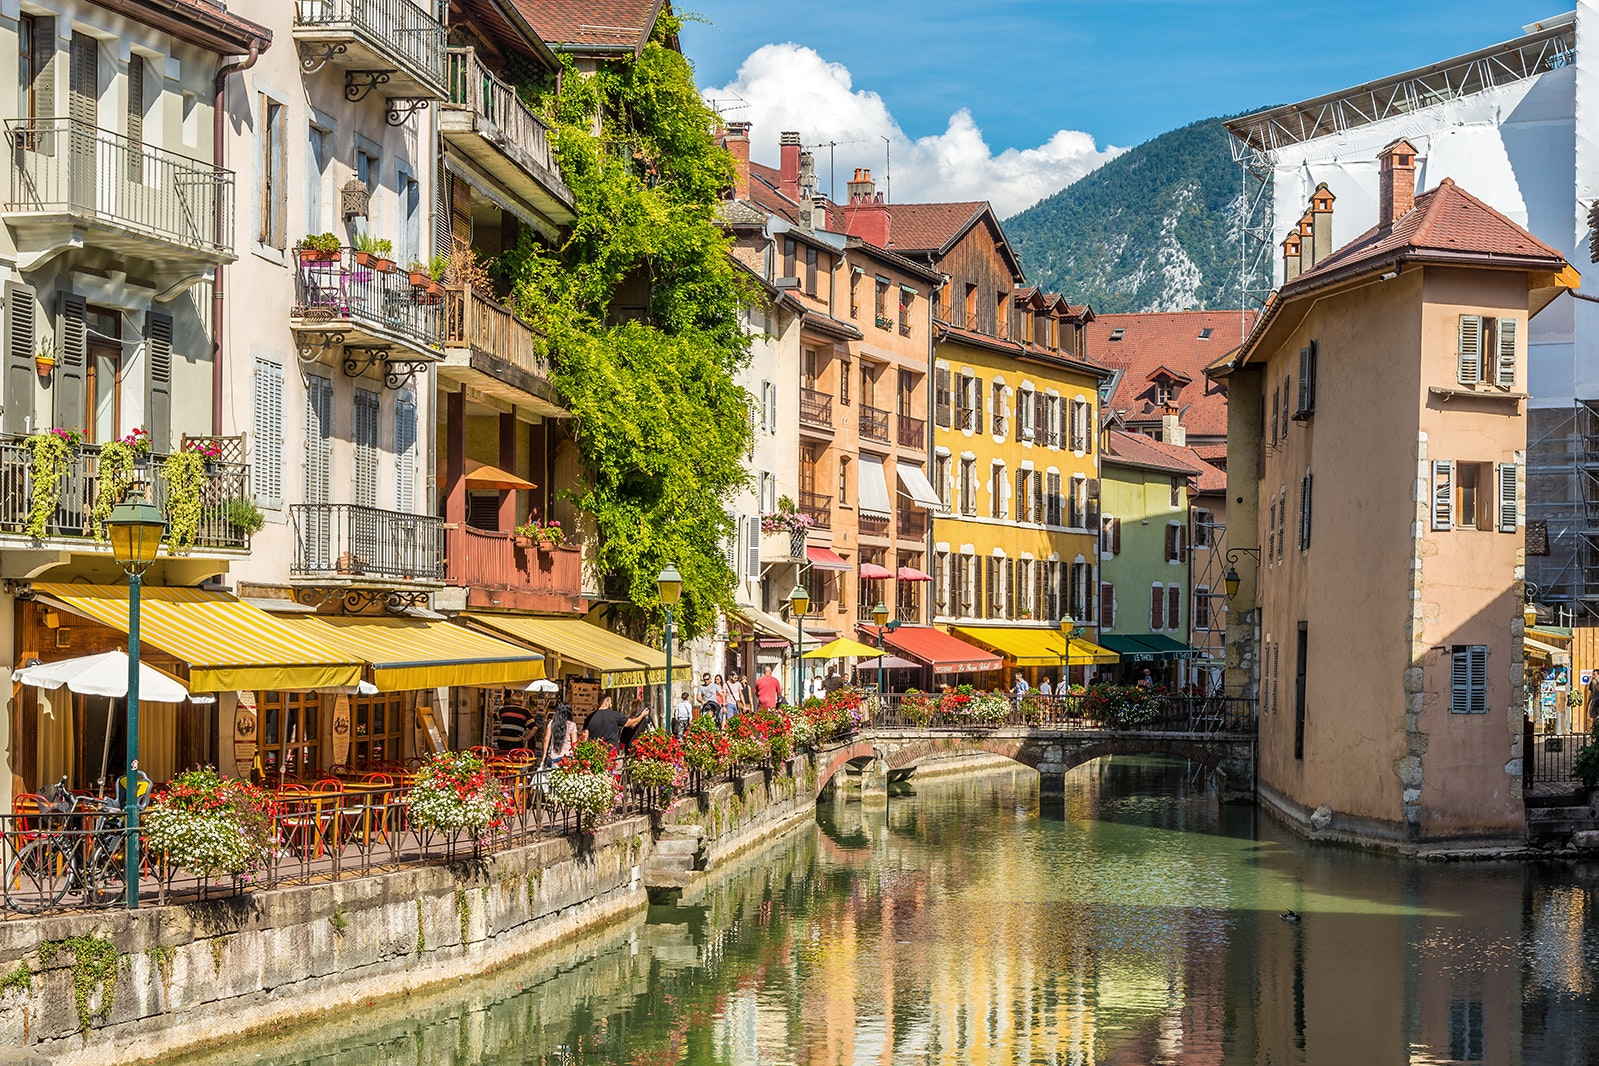 Summer is the ideal time to bask in the sun at one of the cafés along the canals of Annecy.